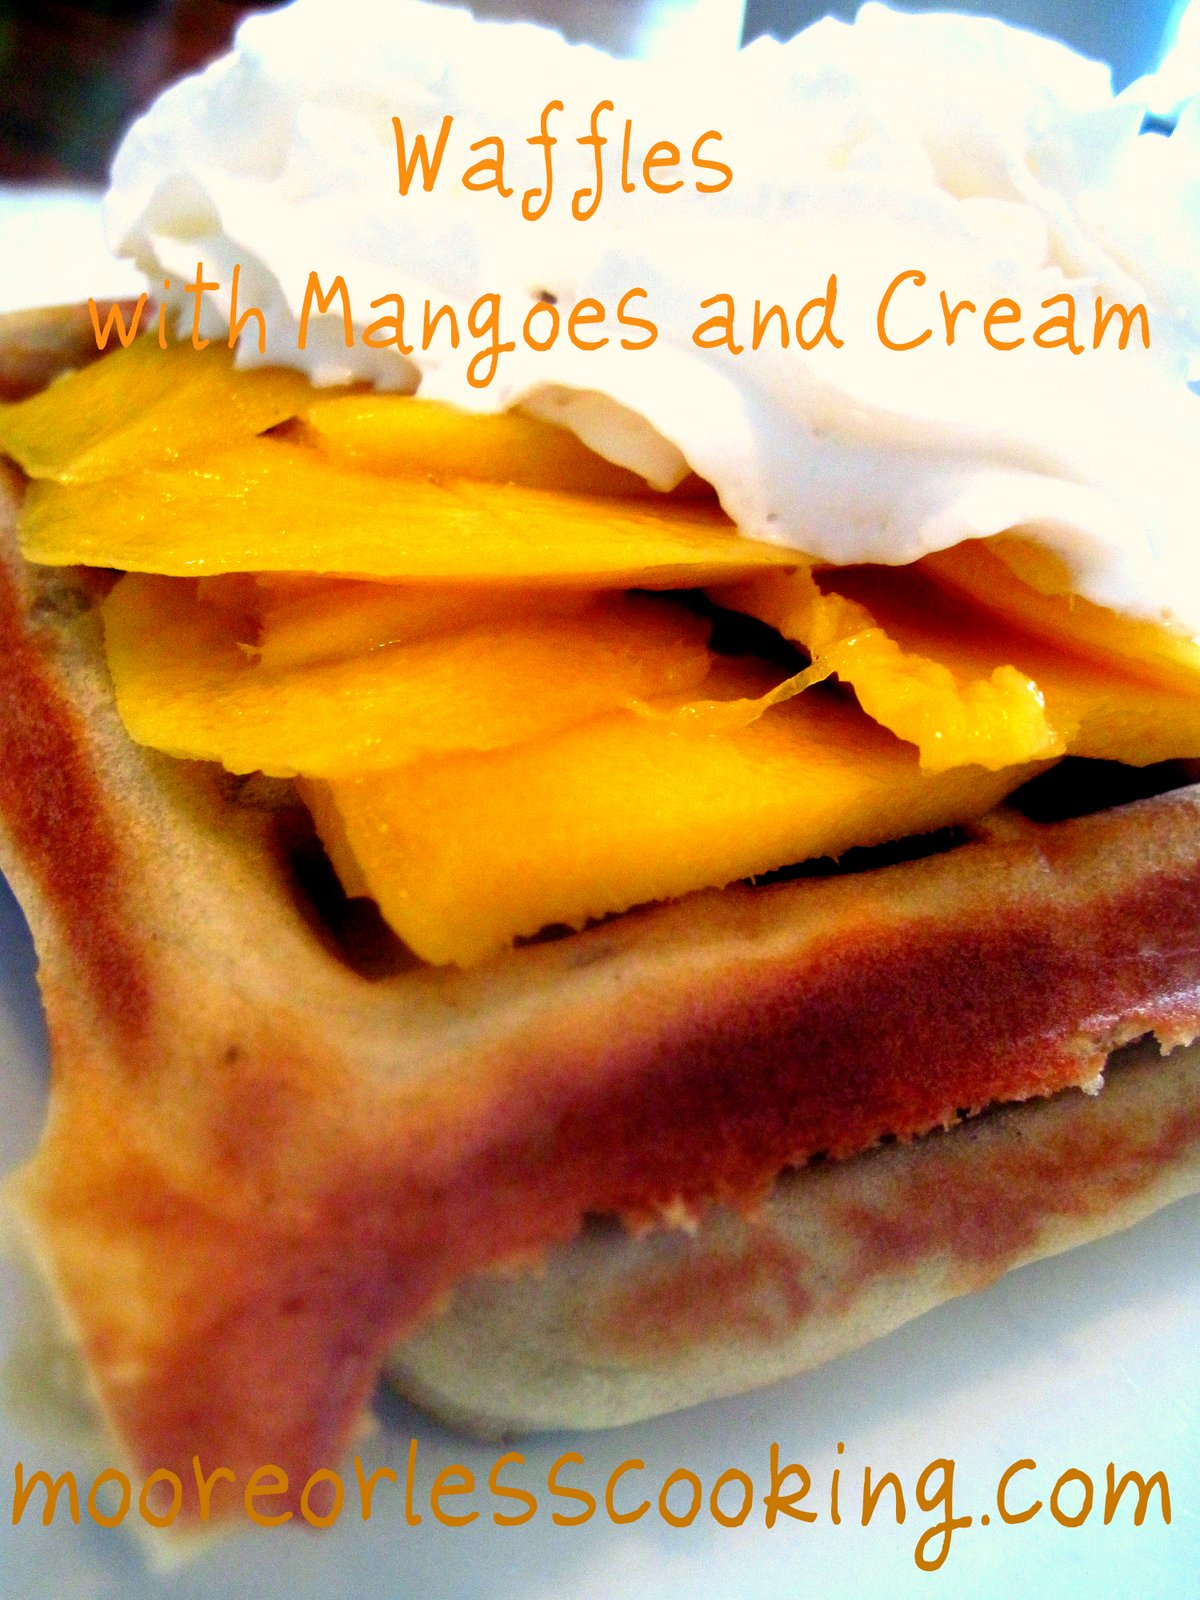 Waffles with Mangoes and Cream